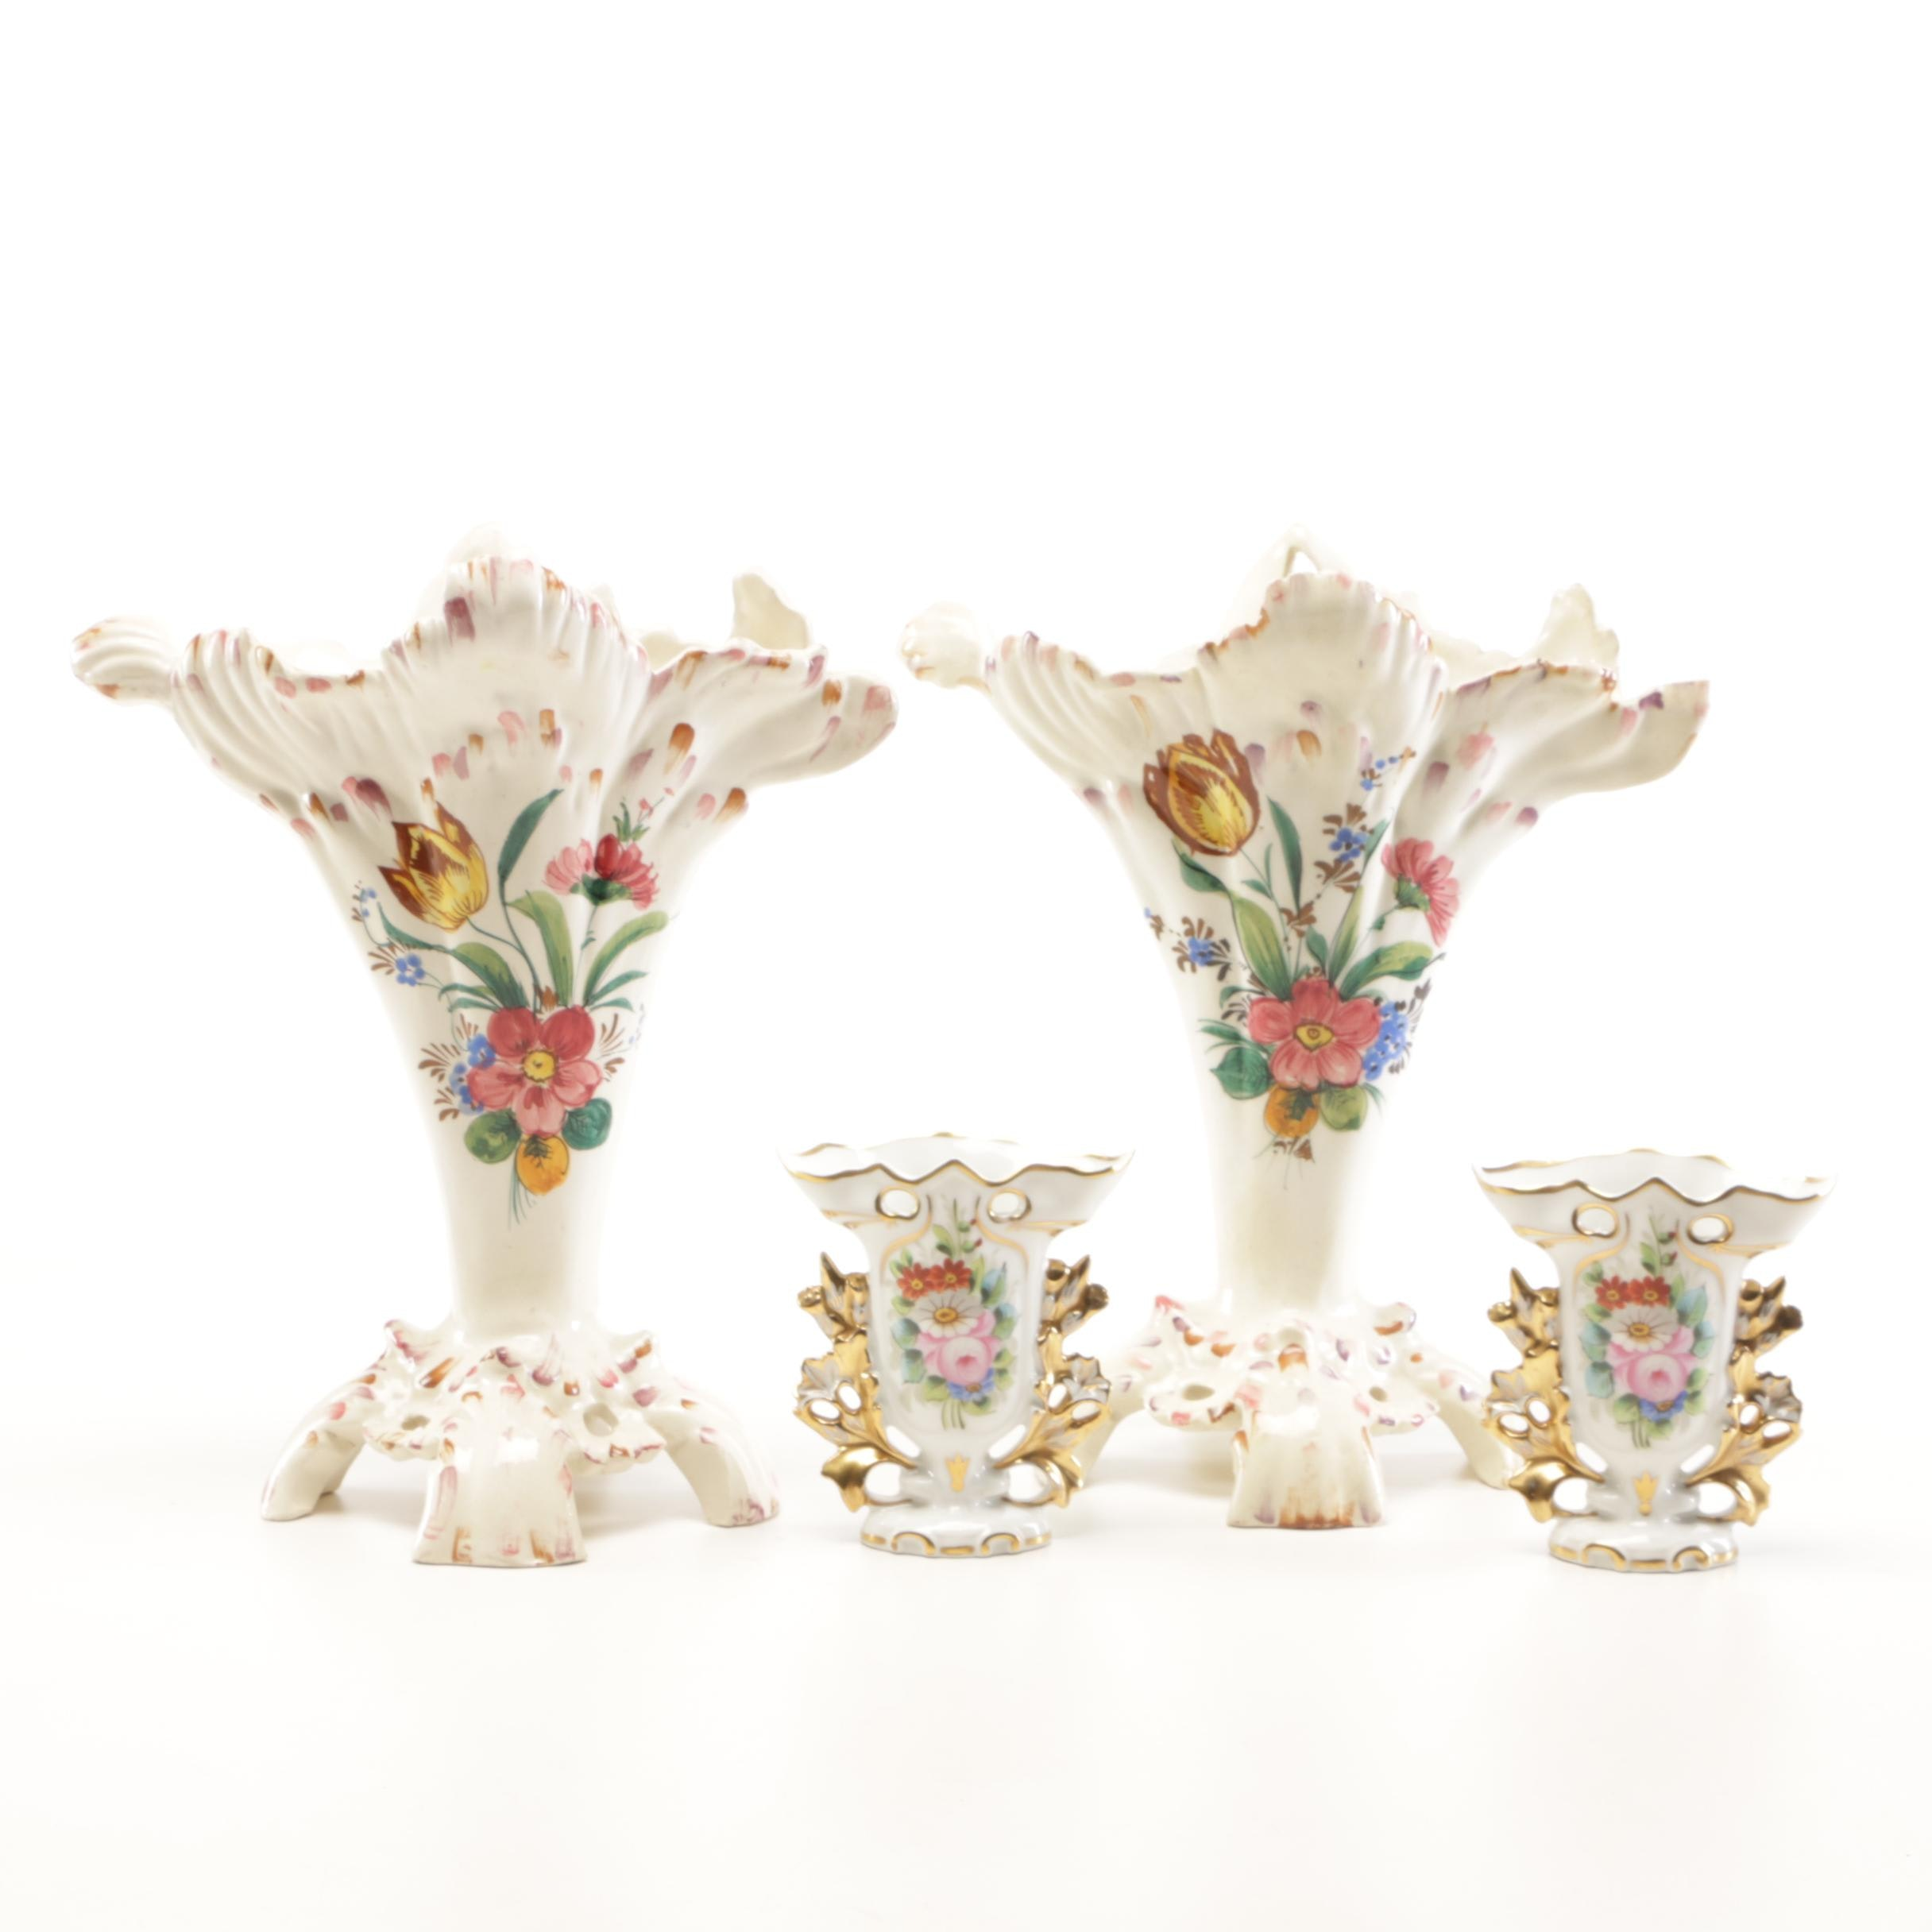 "Decorative Mantel Vases from Italy and ""Vista Alegre"" Brand from Portugal"